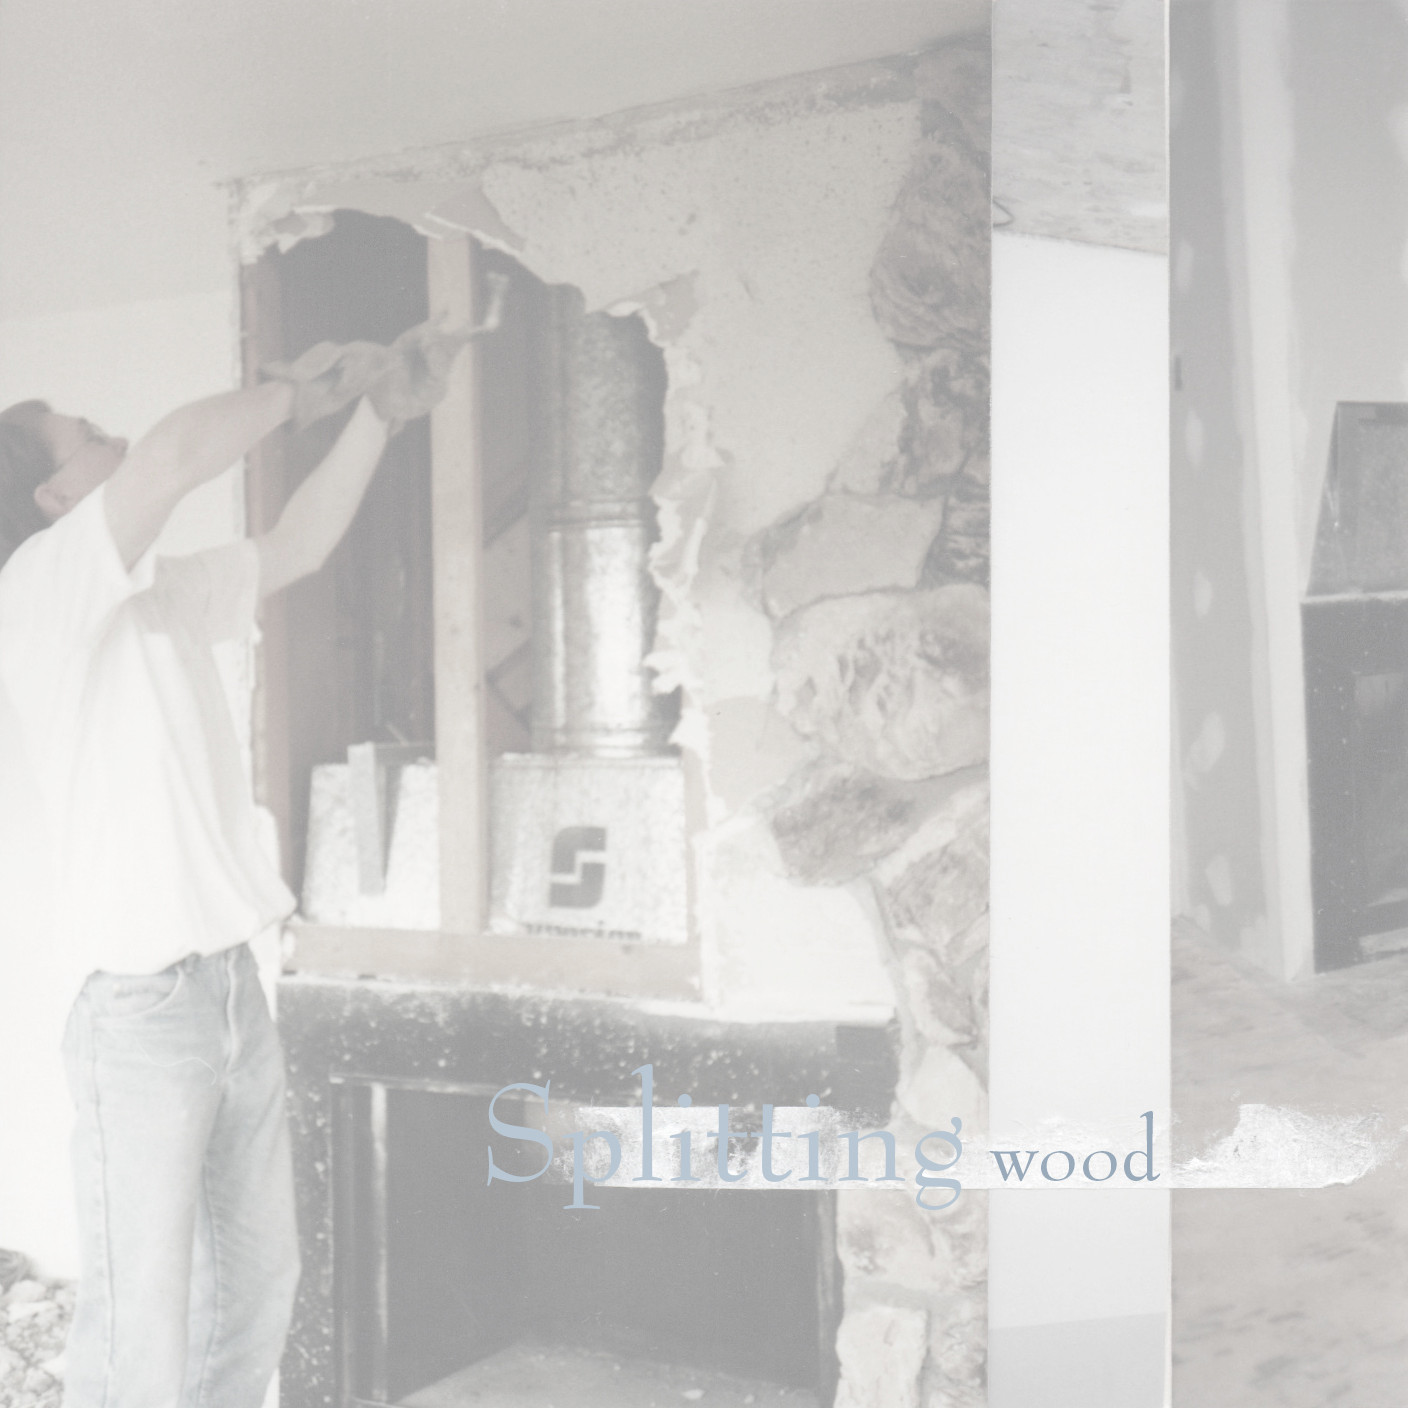 Splitting Wood Website Tile.jpg